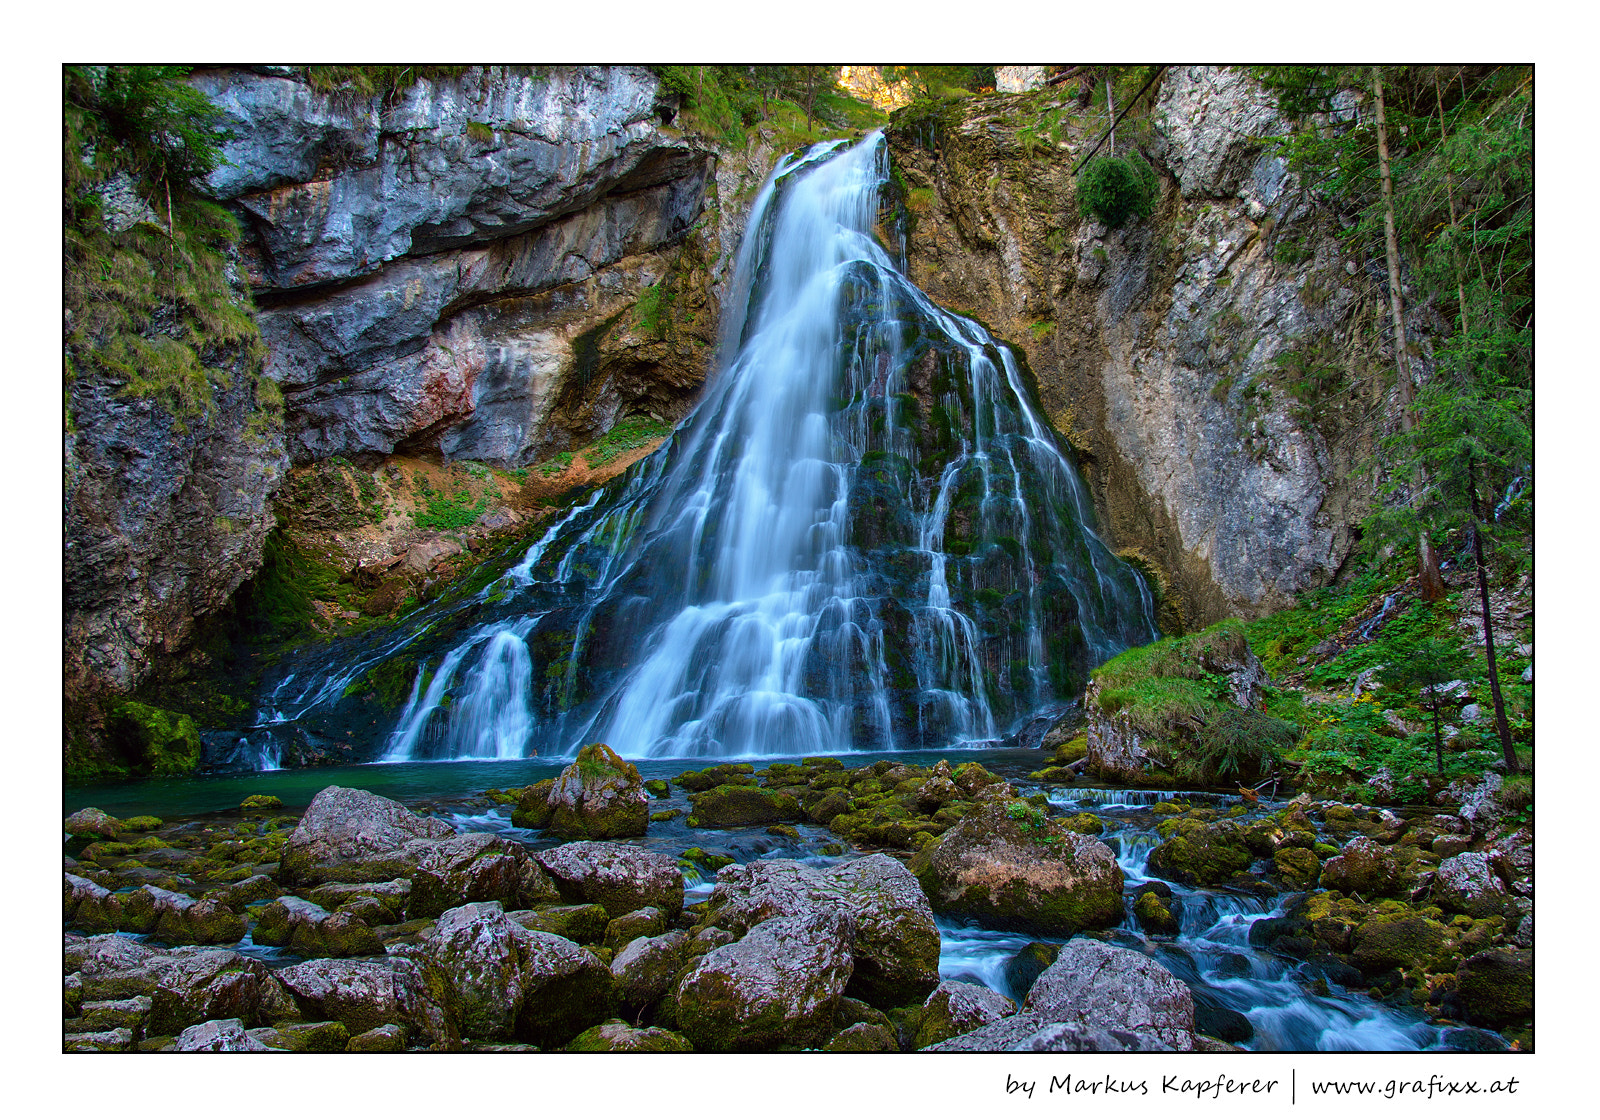 Photograph Waterfall by Markus Kapferer on 500px